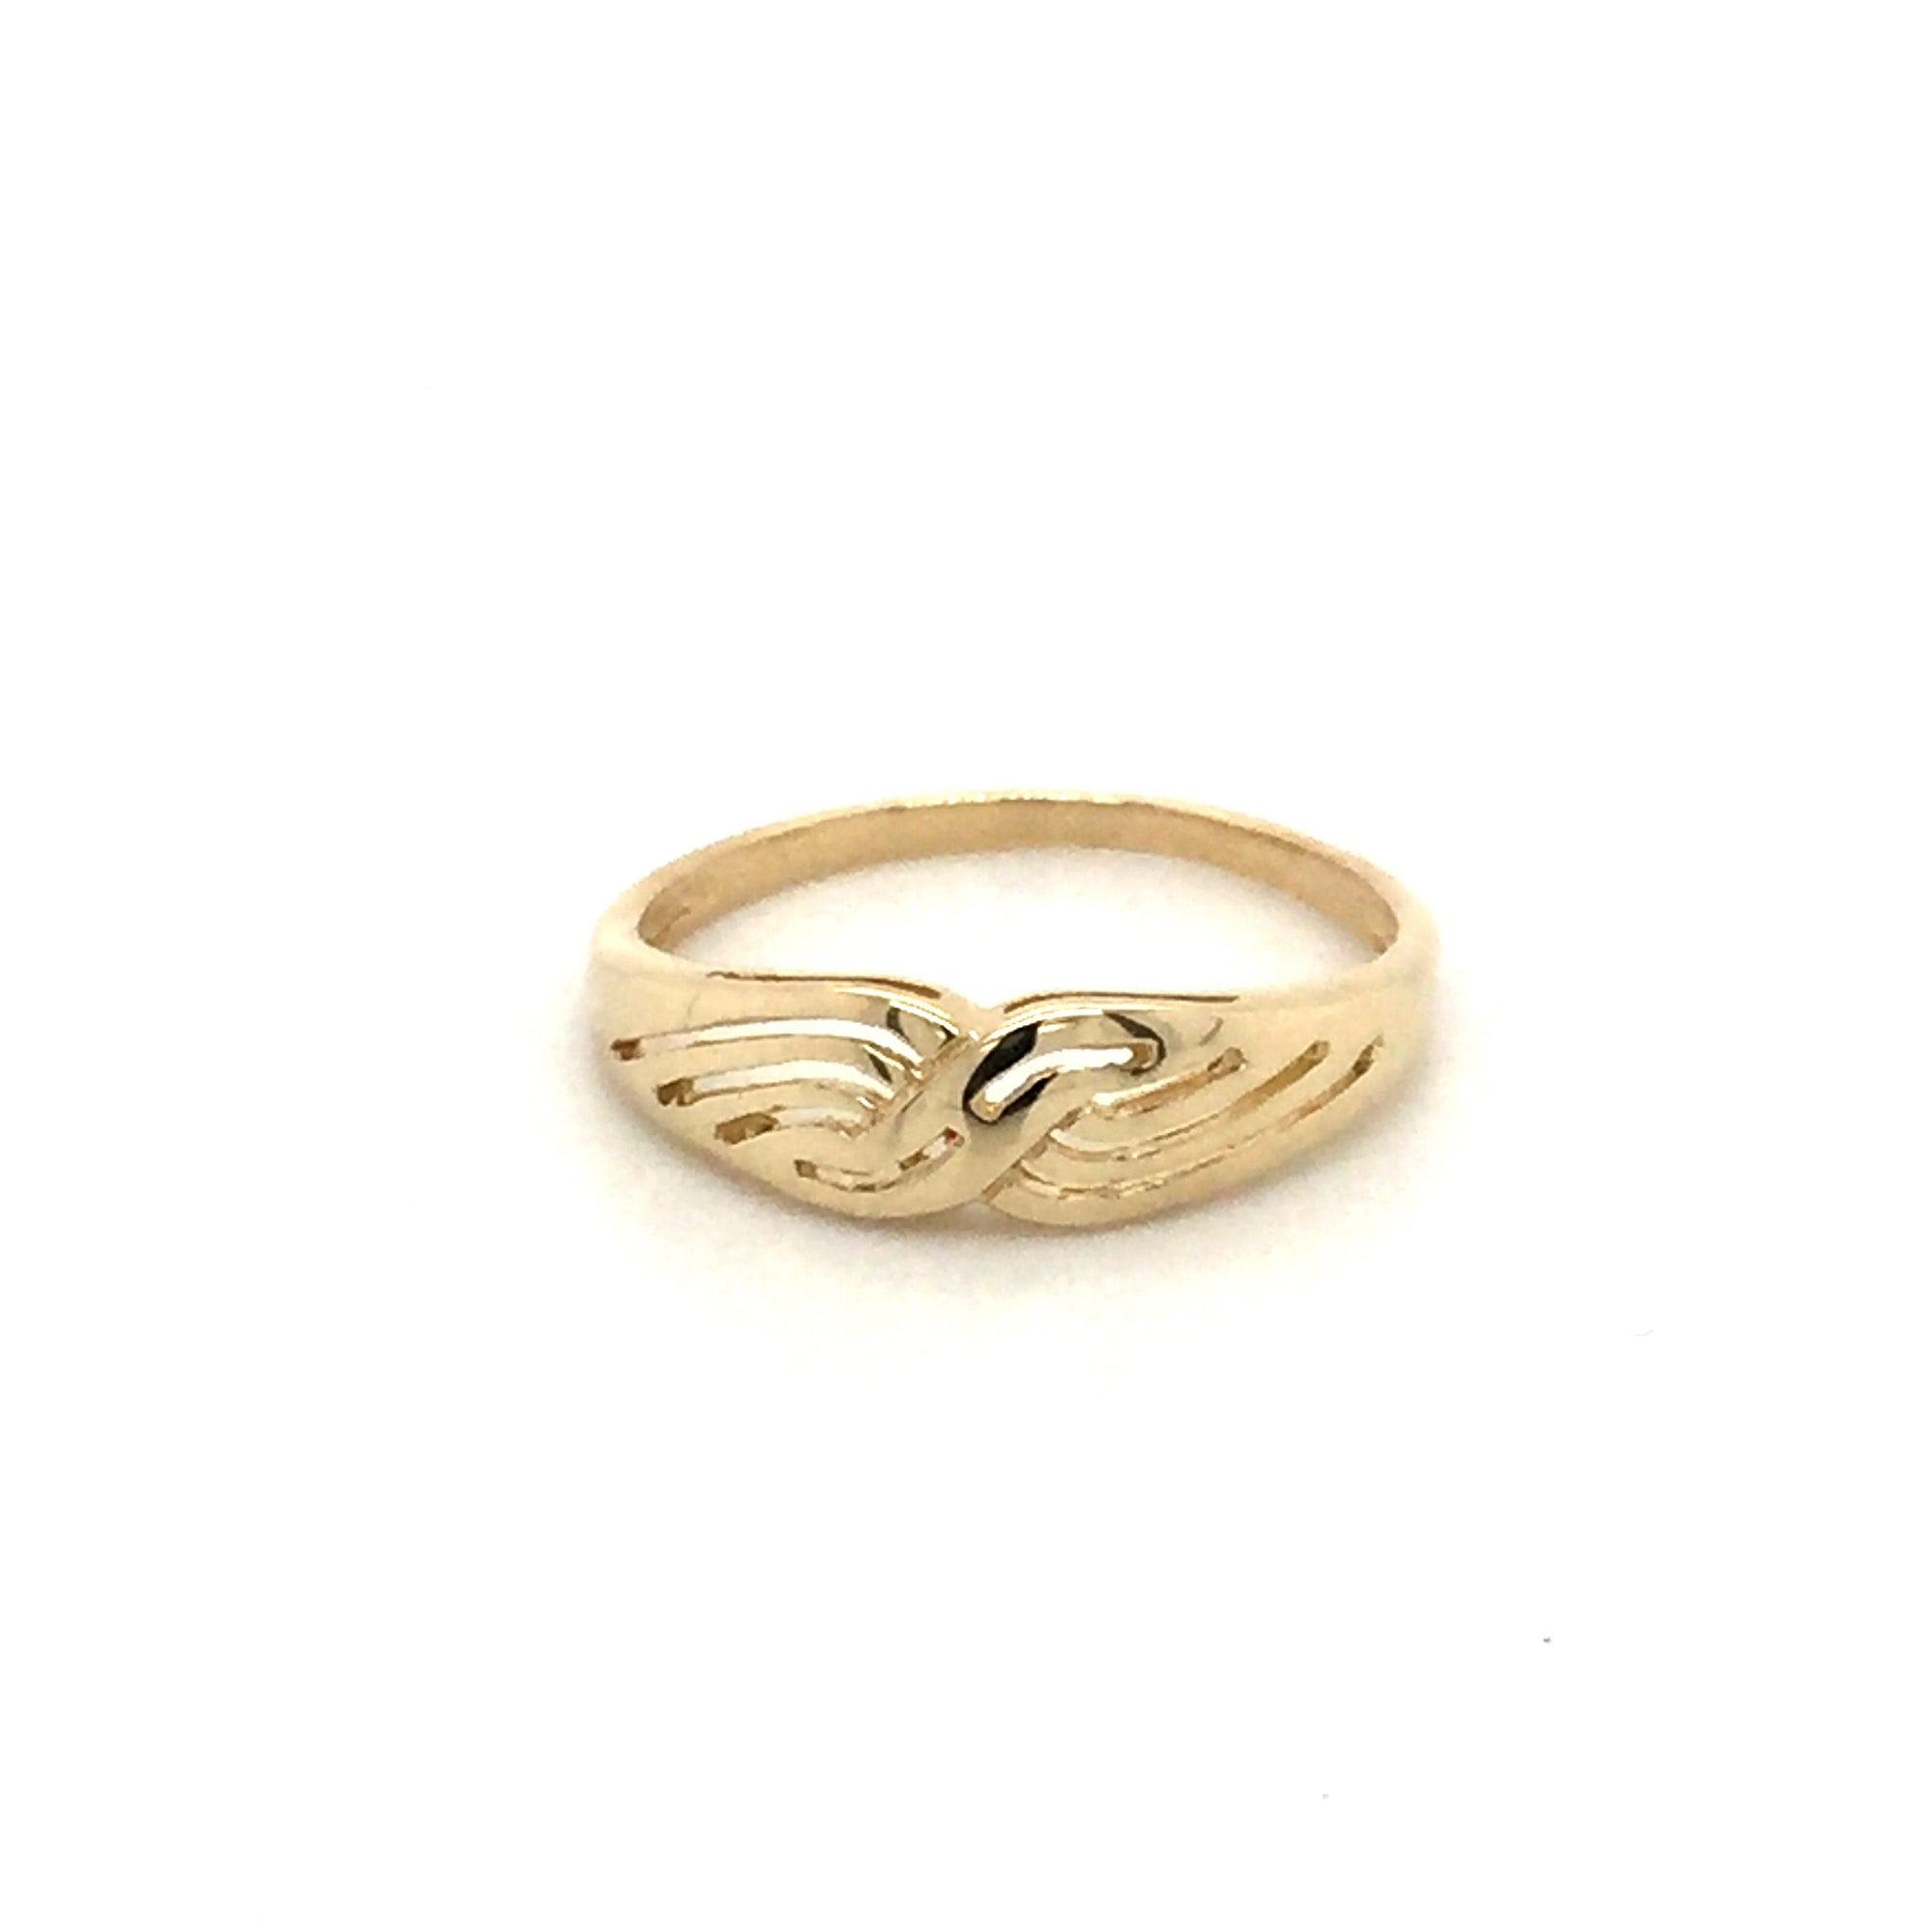 9ct gold ring - Red Carpet Jewellers